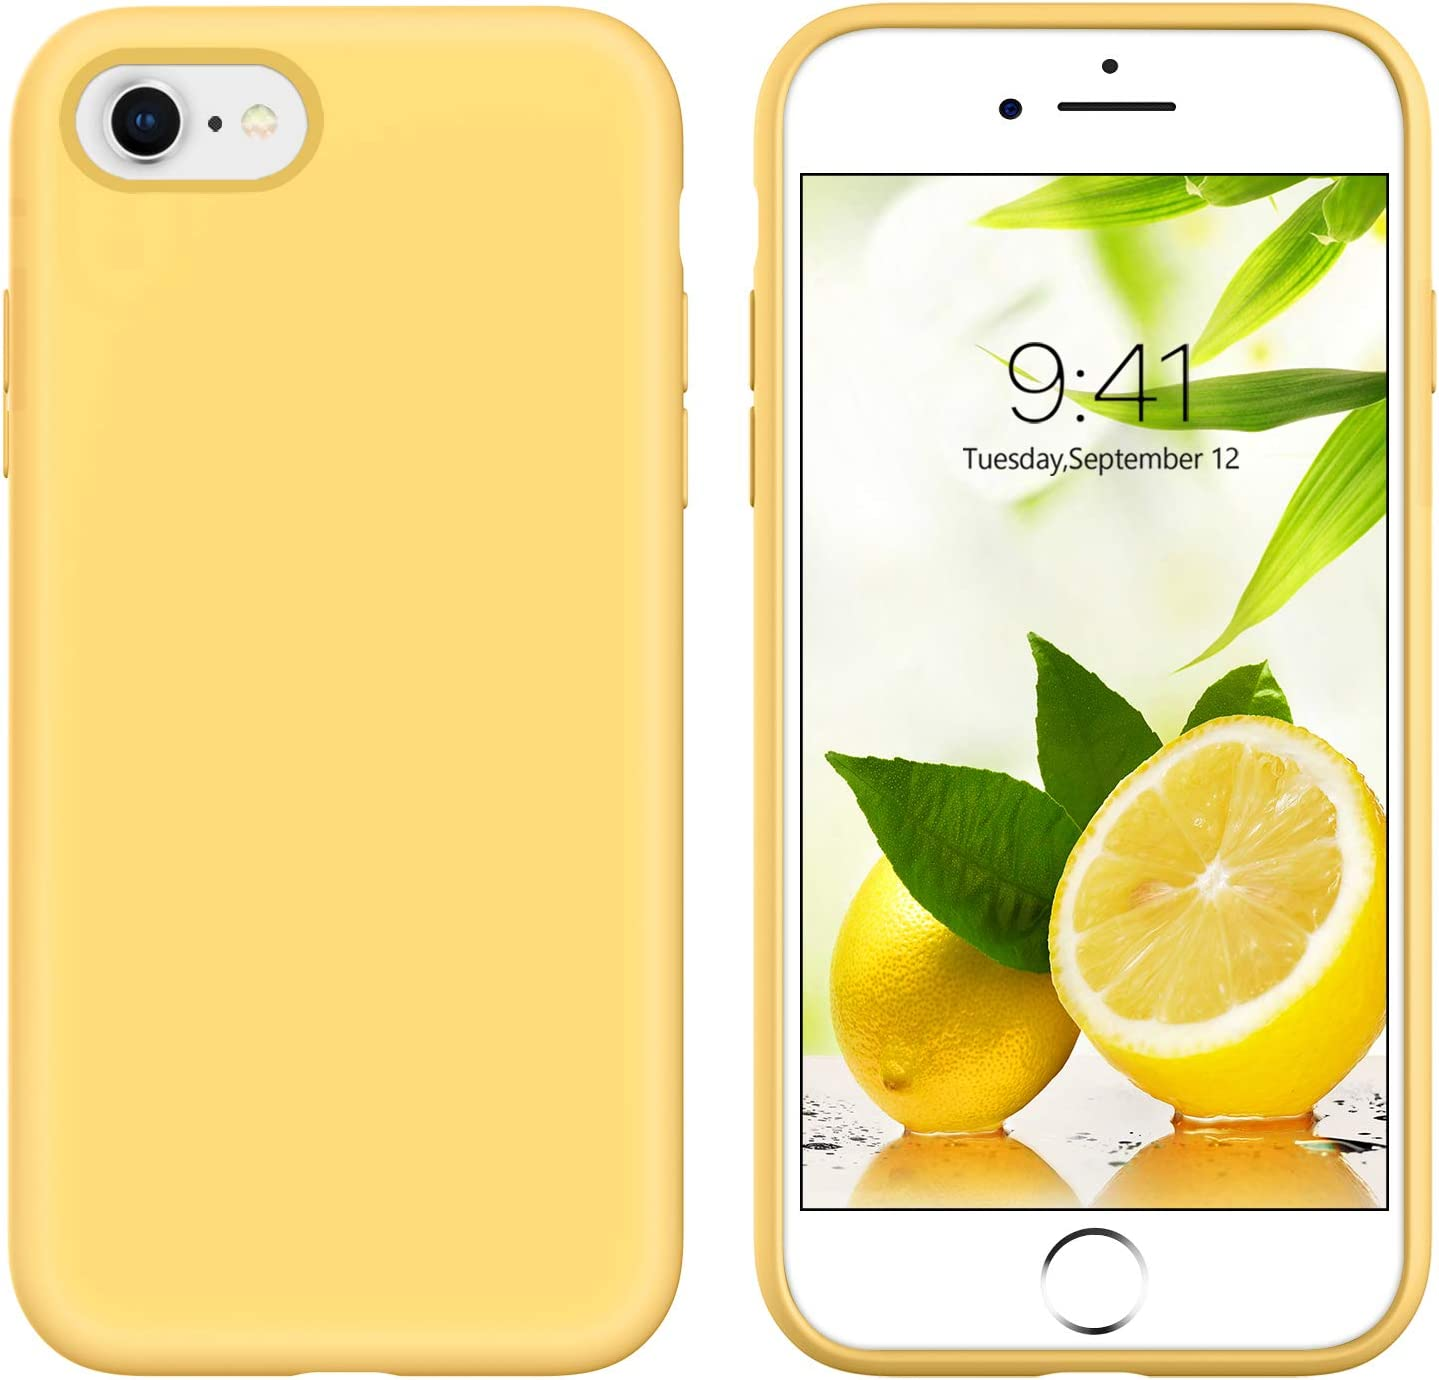 GUAGUA iPhone SE 2020 Case iPhone 8 Case iPhone 7 Case 4.7-inch Liquid Silicone Soft Gel Rubber Slim Microfiber Lining Cushion Texture Cover Protective Case for iPhone 8/7/SE 2020 Yellow